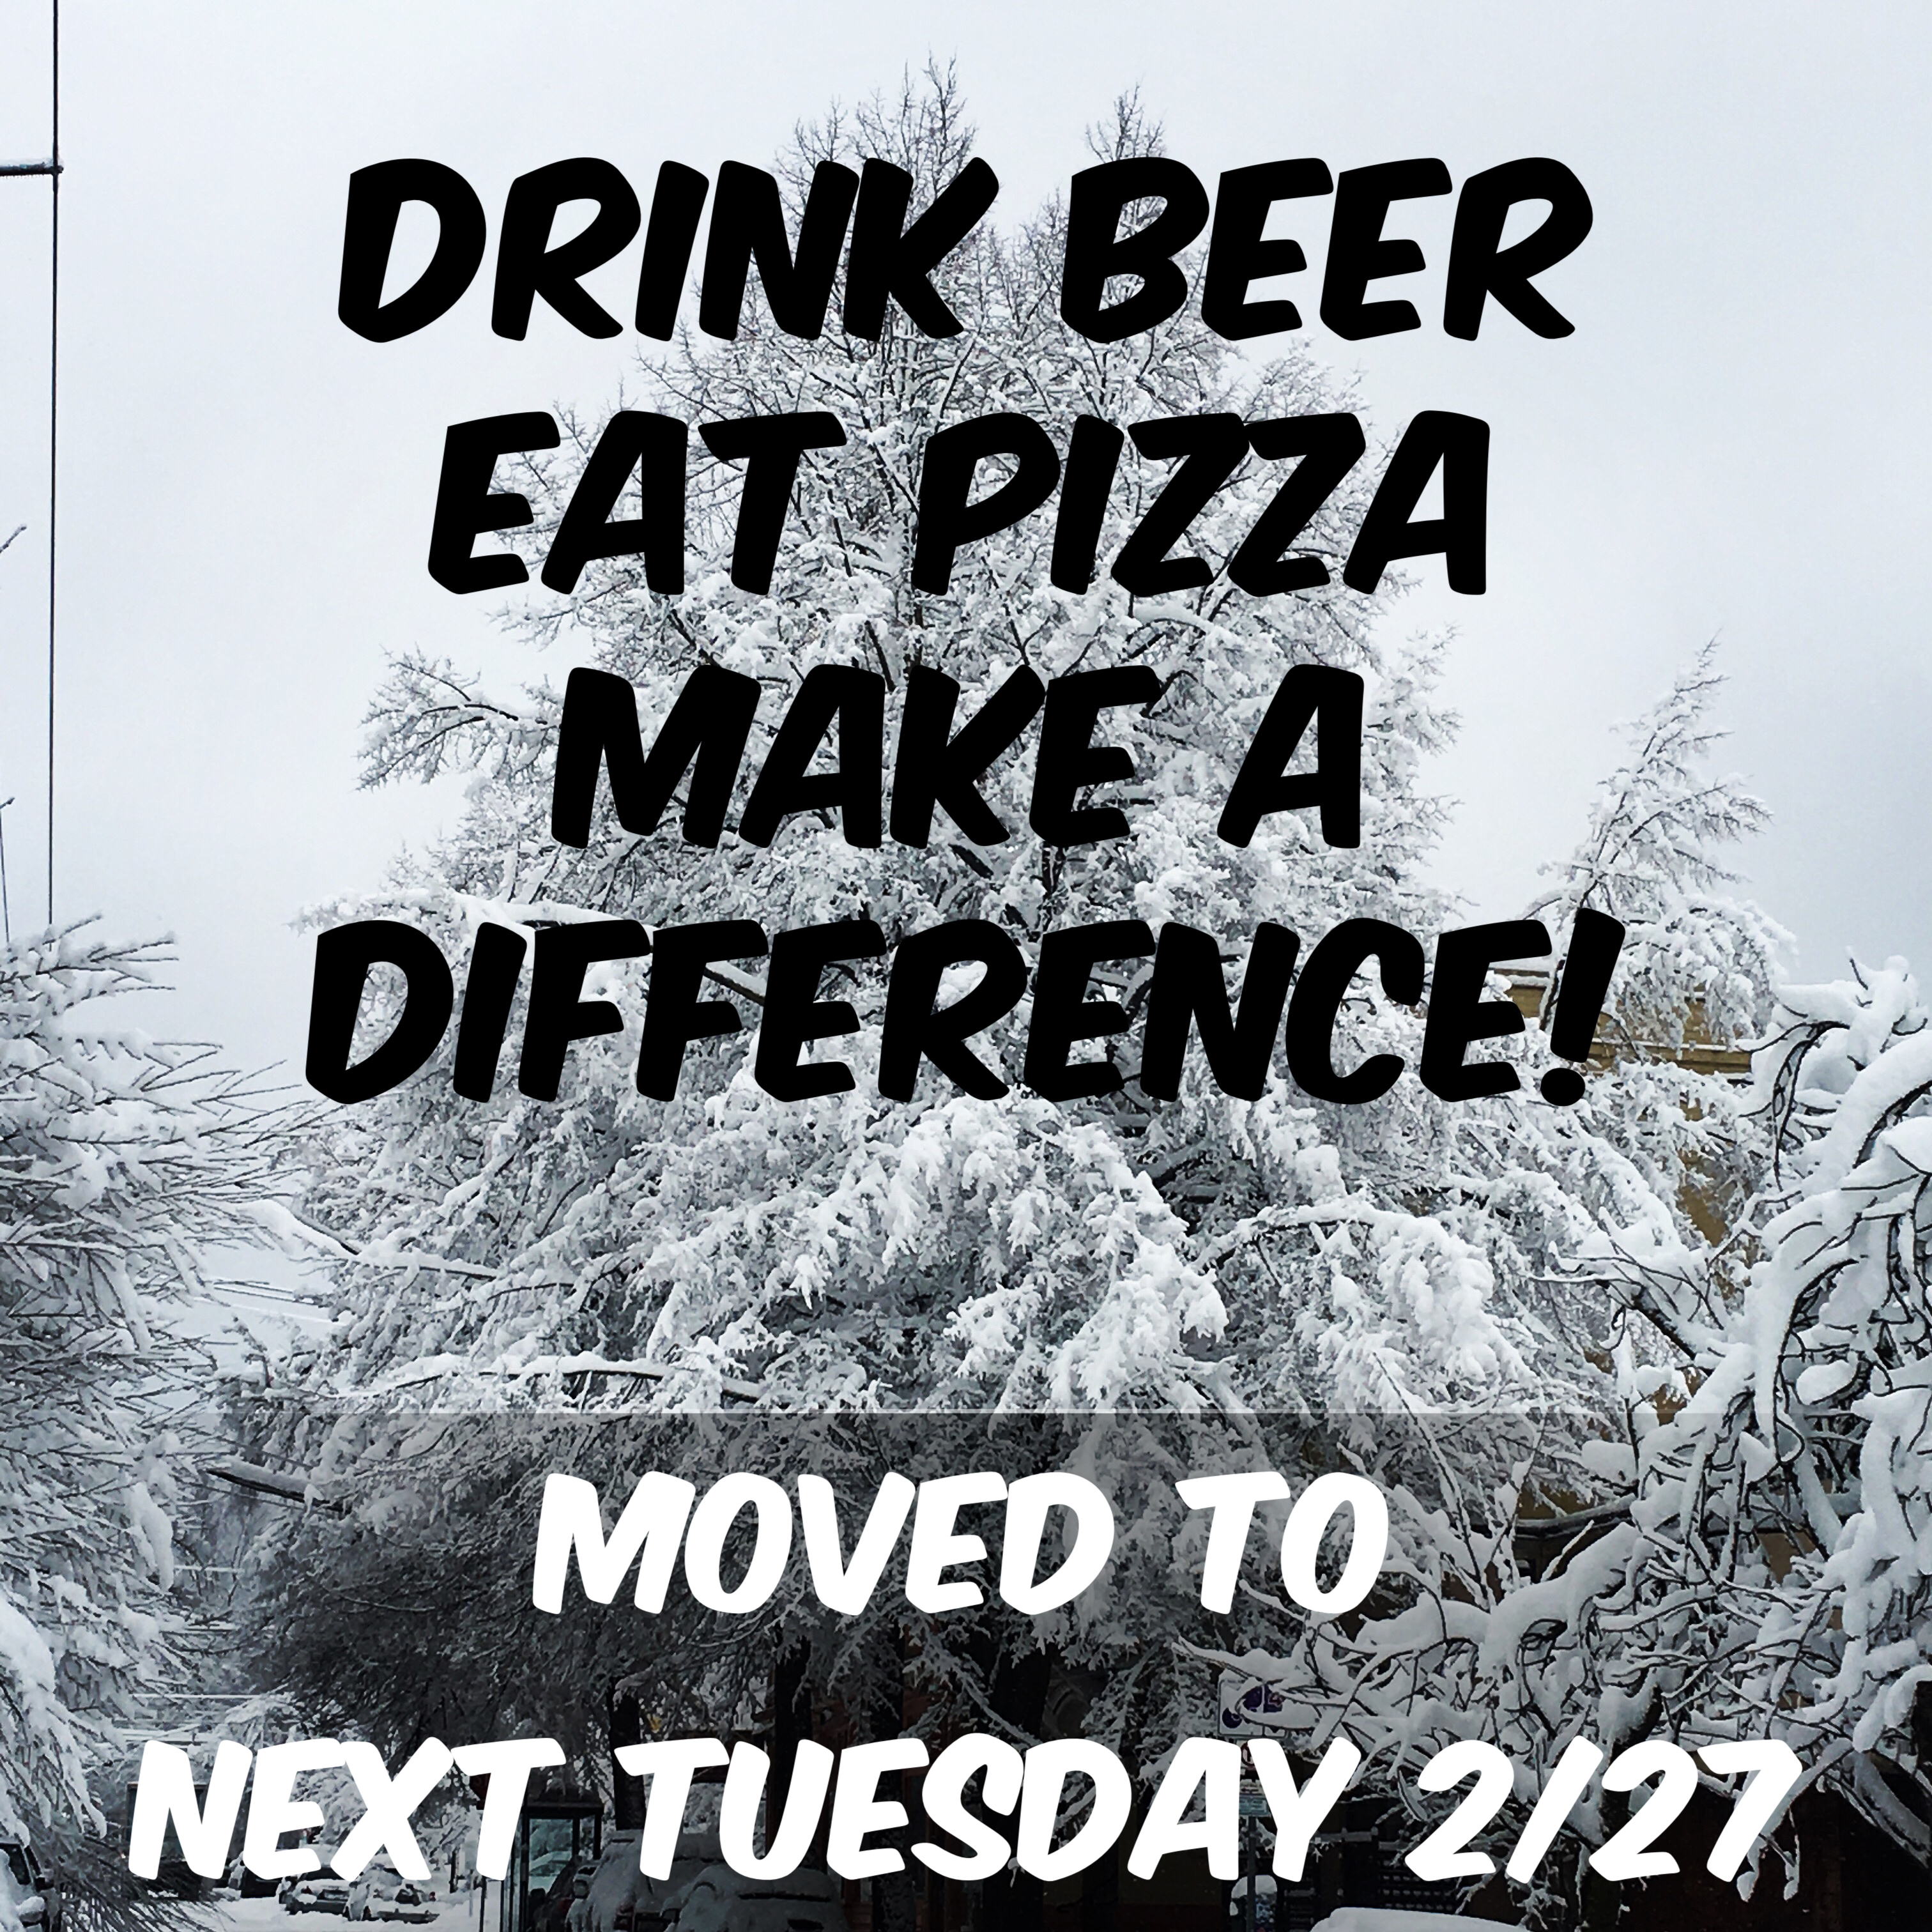 Updated Date -- Tuesday 2/17  Drink Beer - Eat Pizza -  Make a Difference!